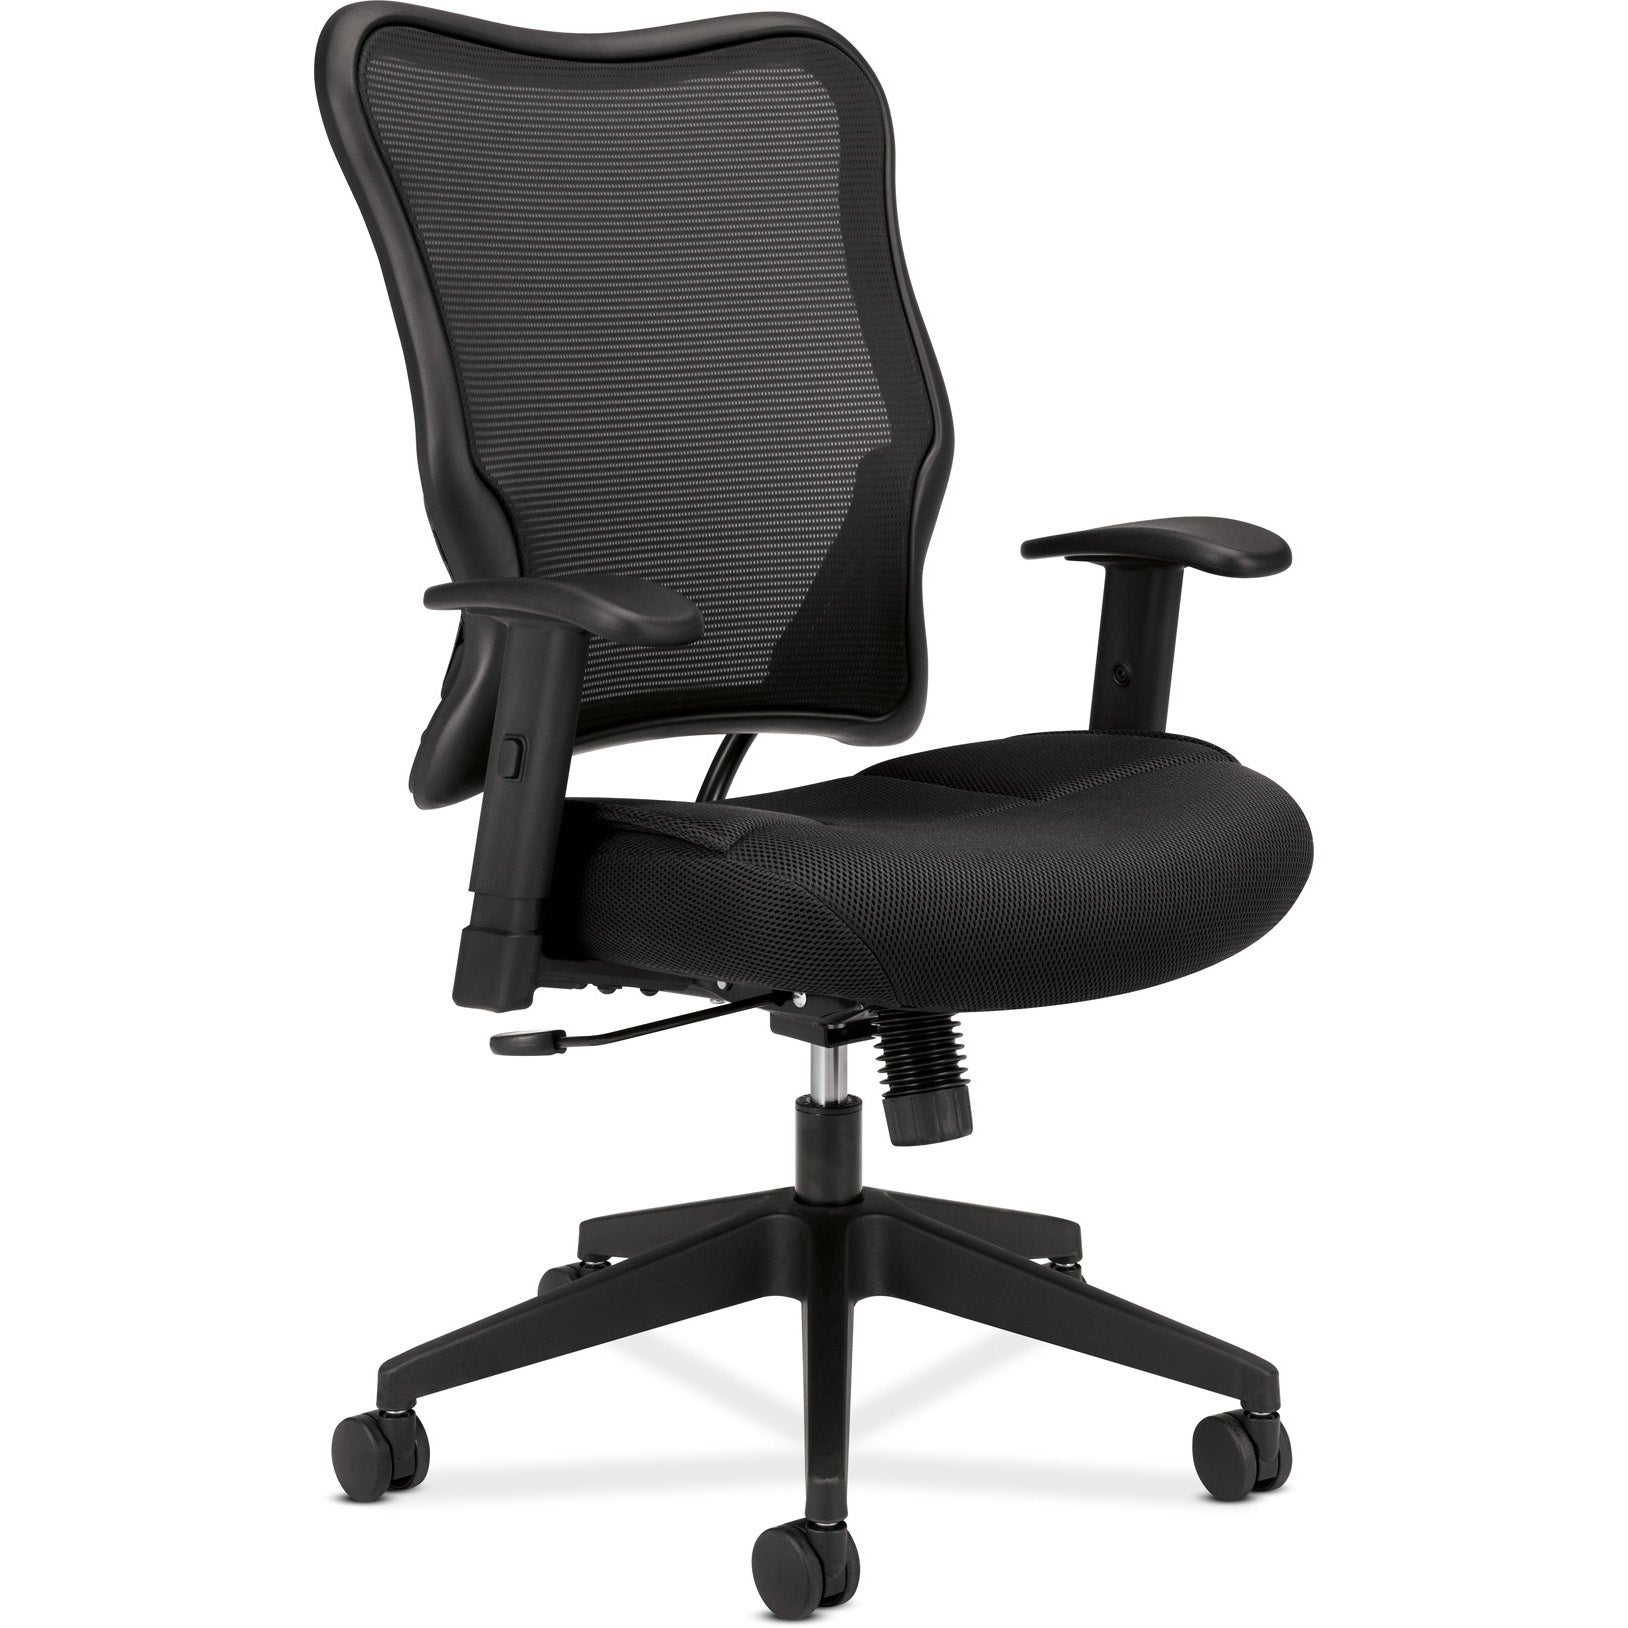 basyx by HON VL702 Black Mesh High-back Work Chair